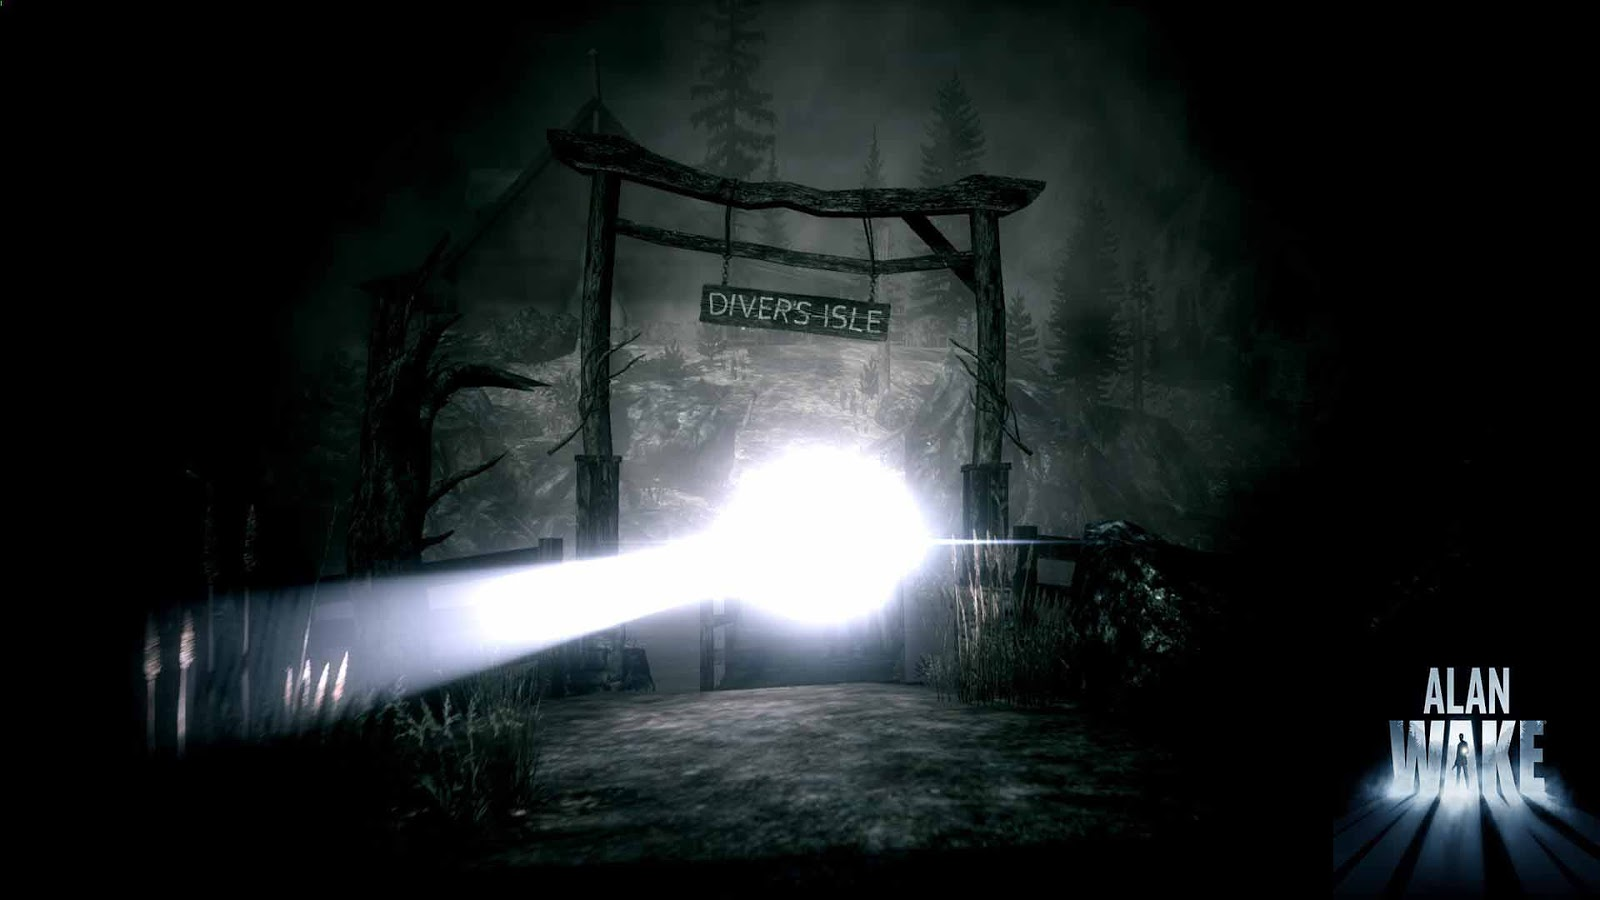 Hd 3d Nature Wallpapers 1080p Widescreen Hq Wallpapers Alan Wake Wallpapers